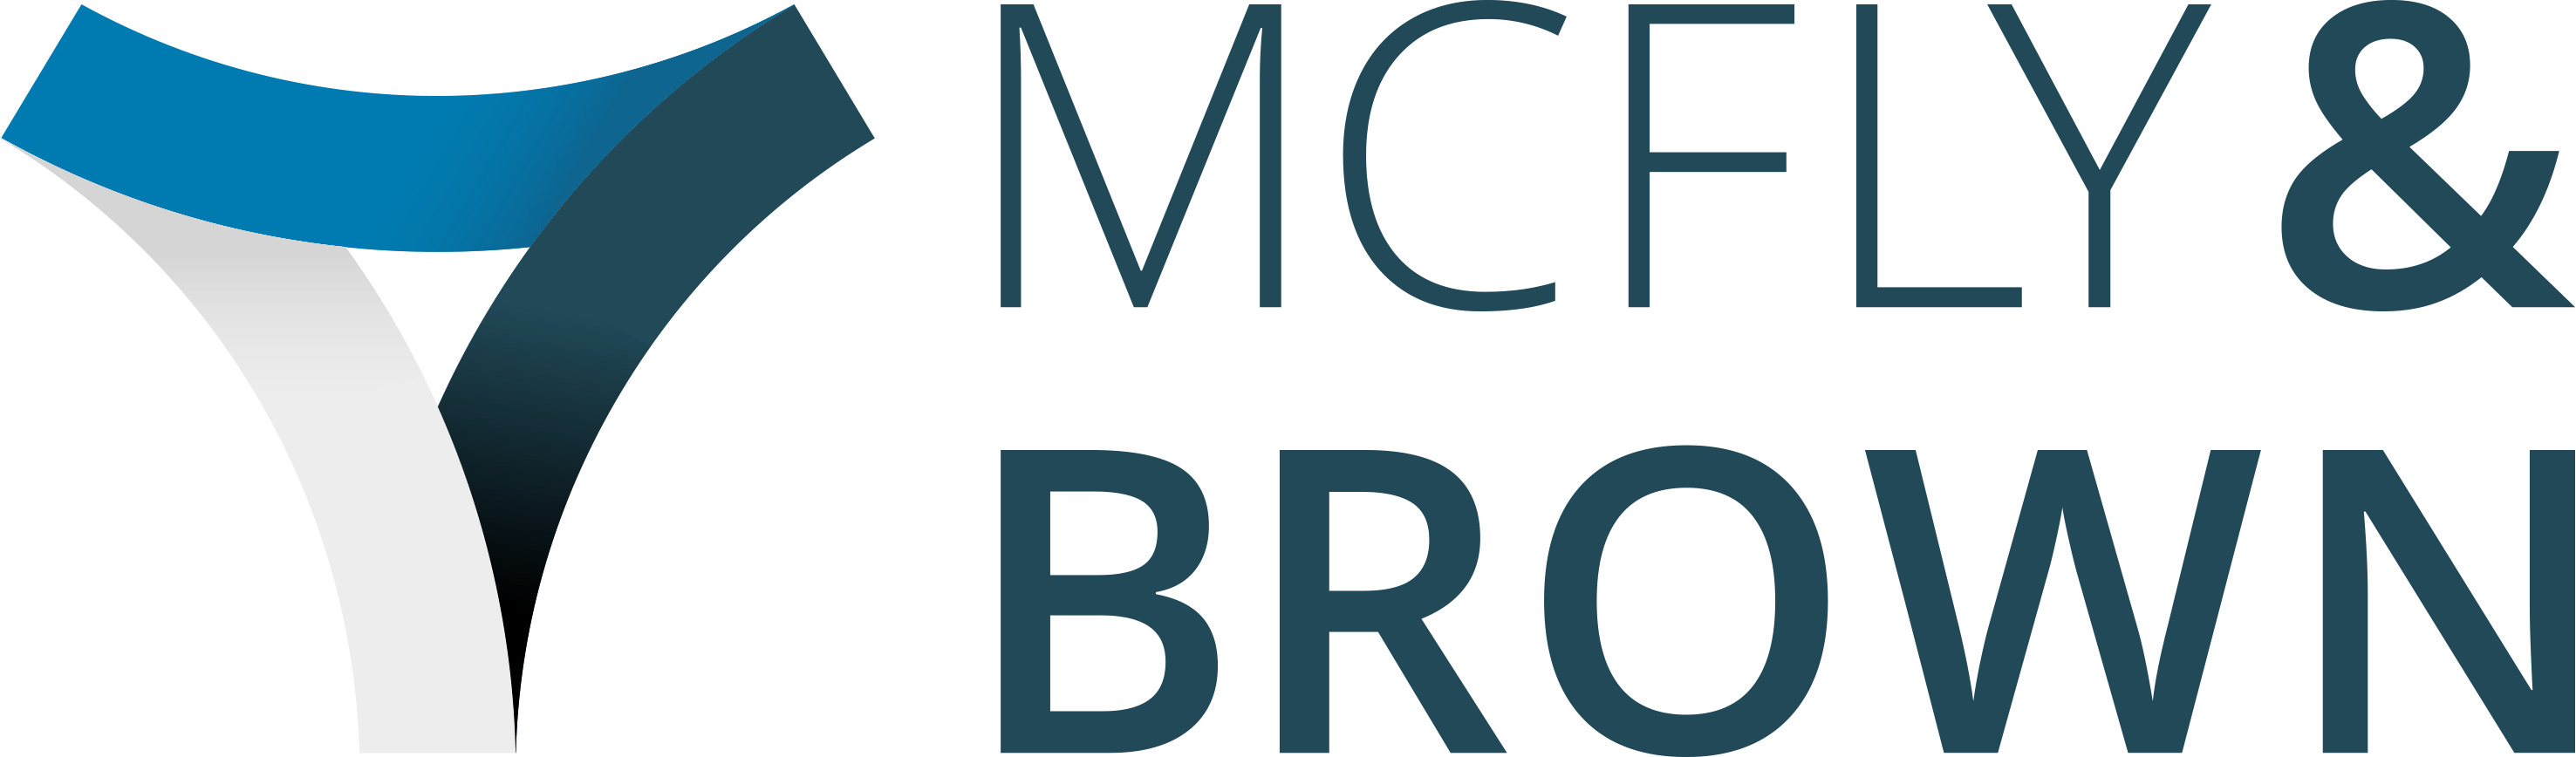 Mcfly brown